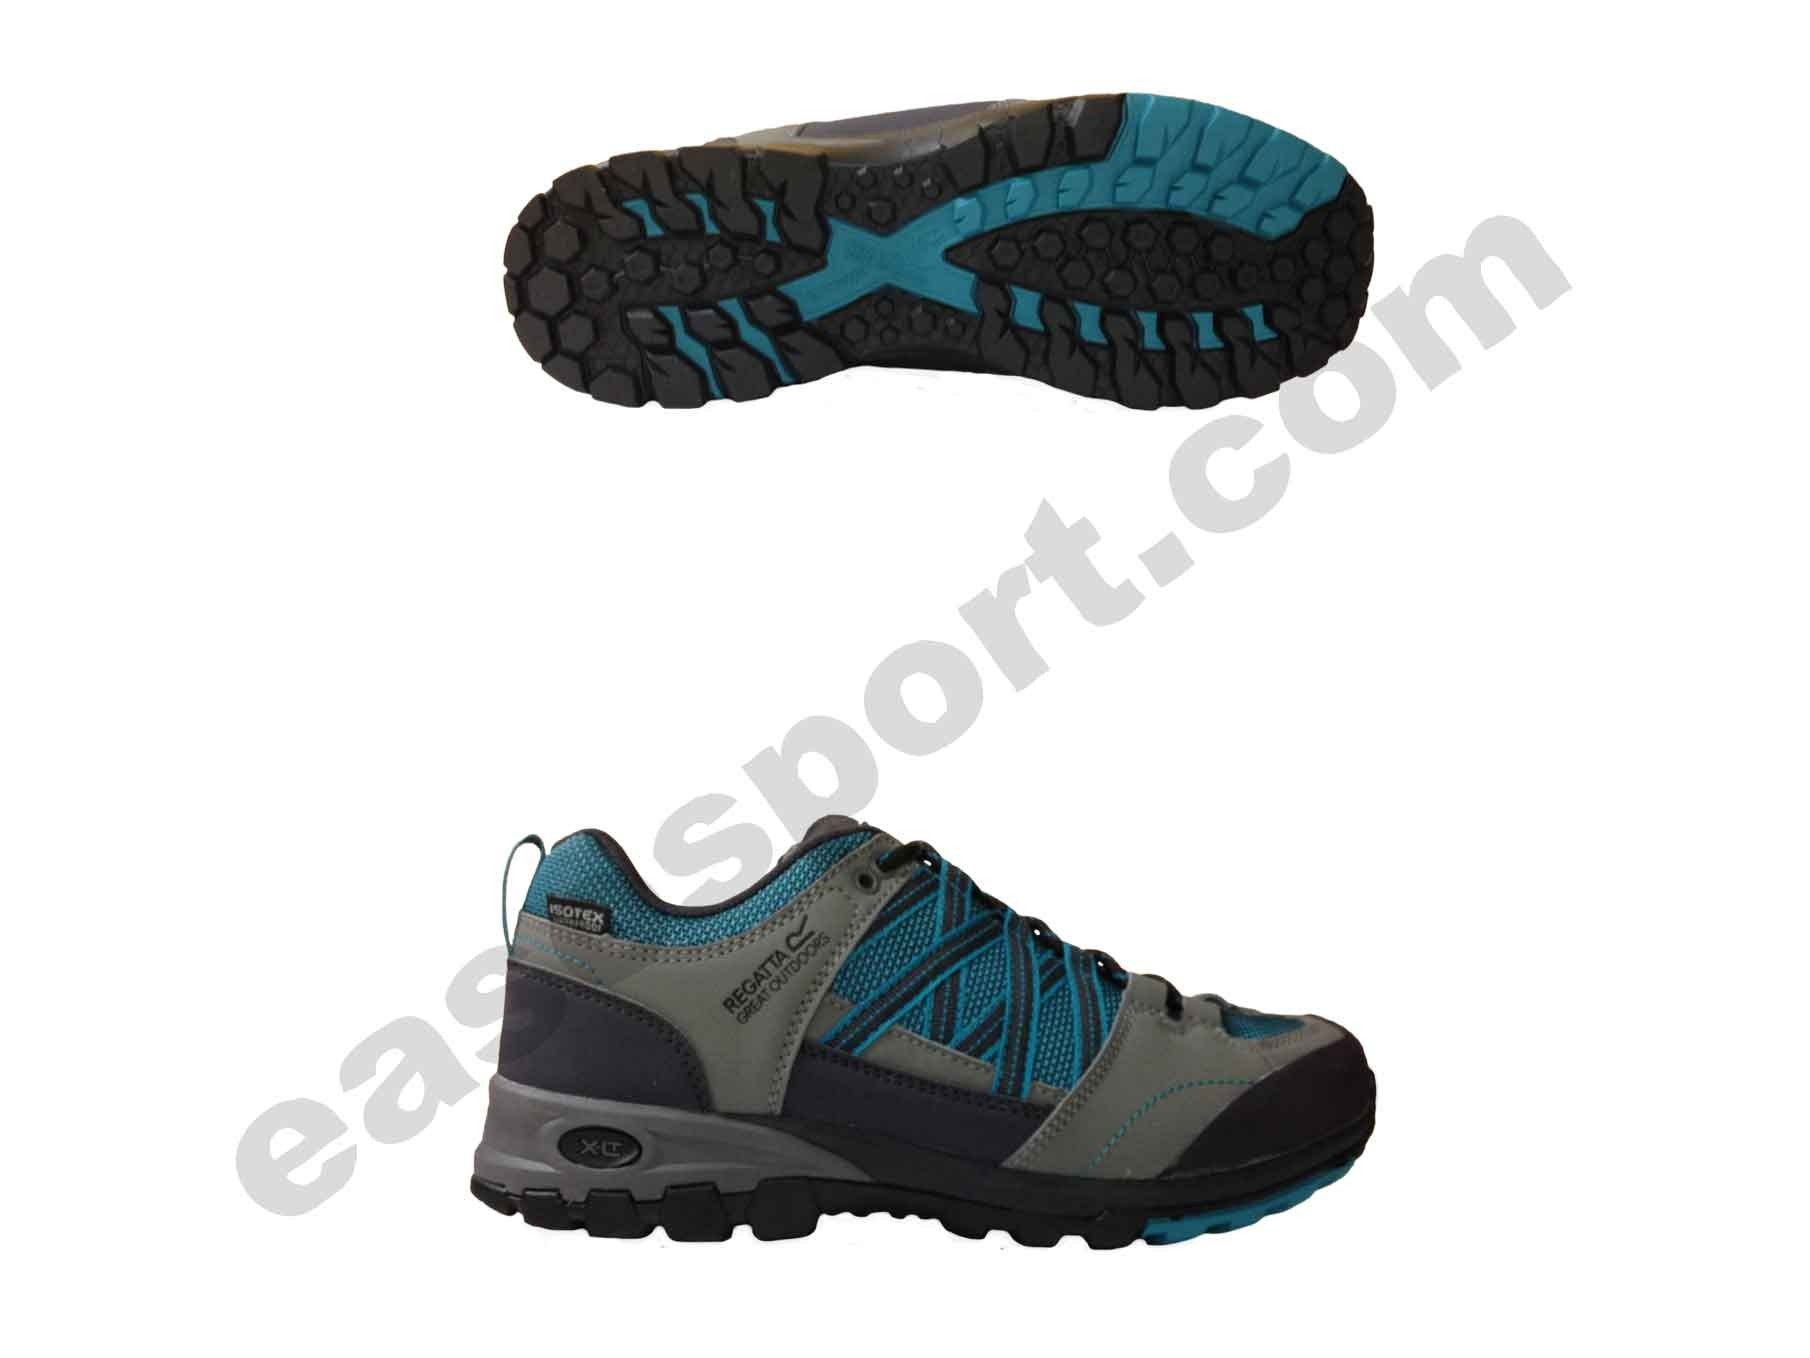 REGATTA ZAPATILLA W. TREKKING SAMARIS LOW REF:RWF499